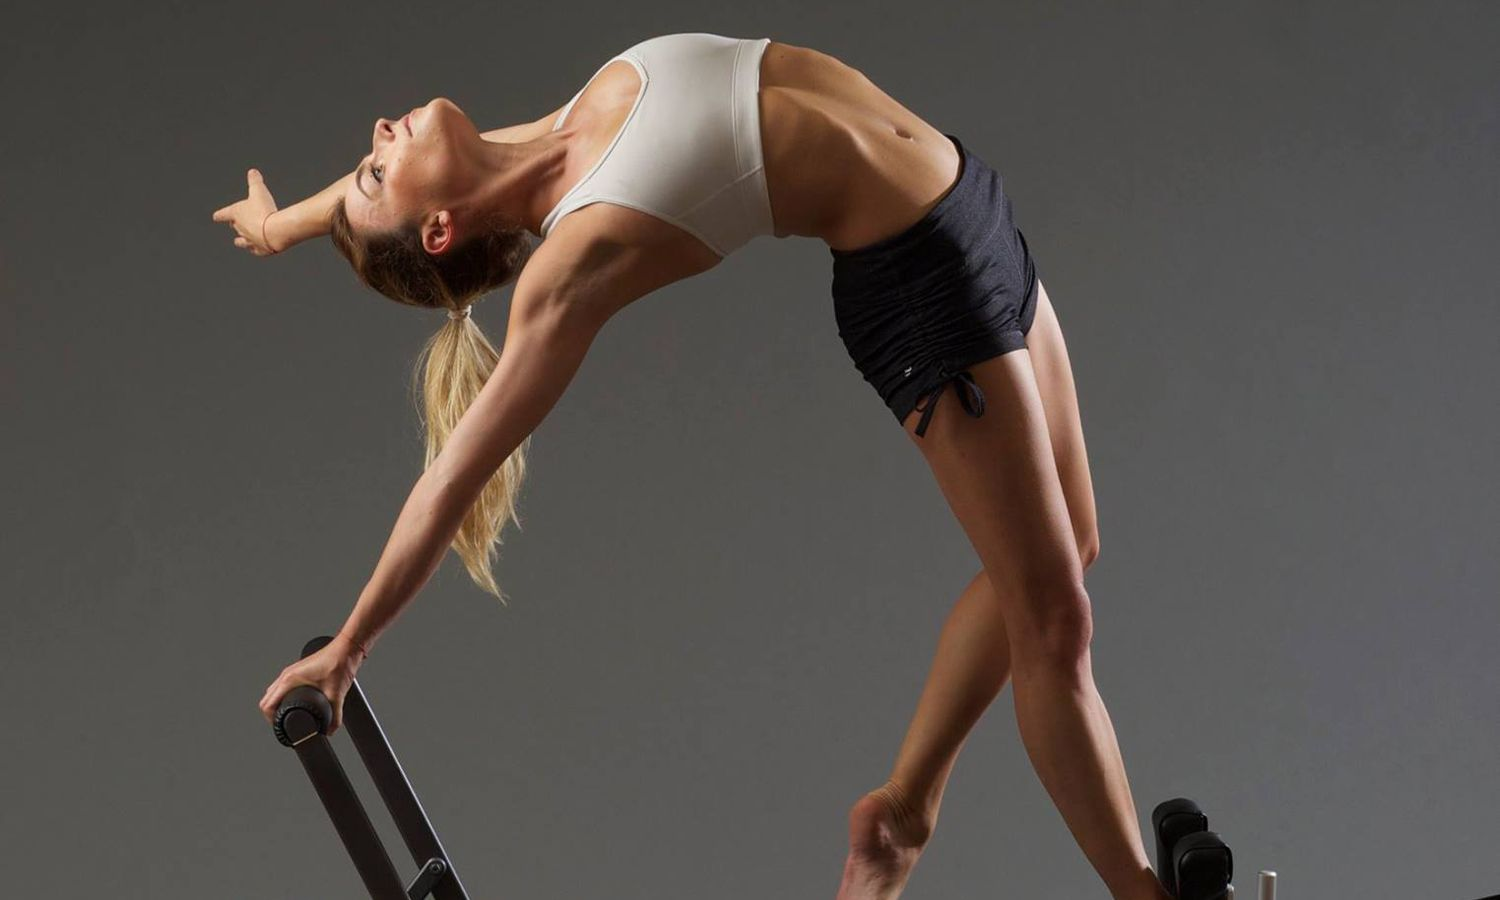 5 Intense Workouts To Get In Shape For Summer